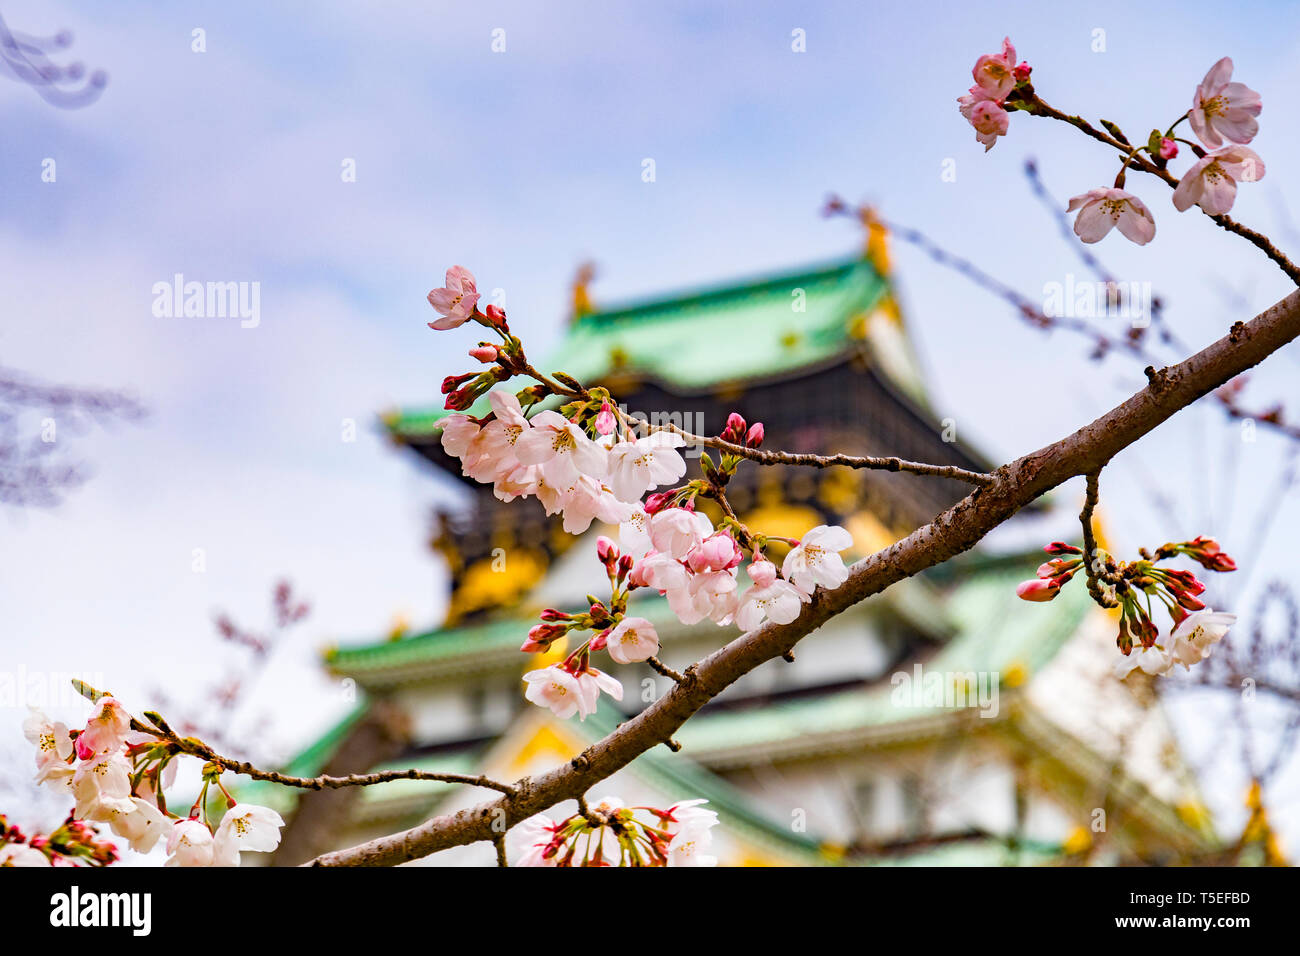 Cherry blossom in the grounds of Osaka Castle, Japan, with the castle keep. Stock Photo